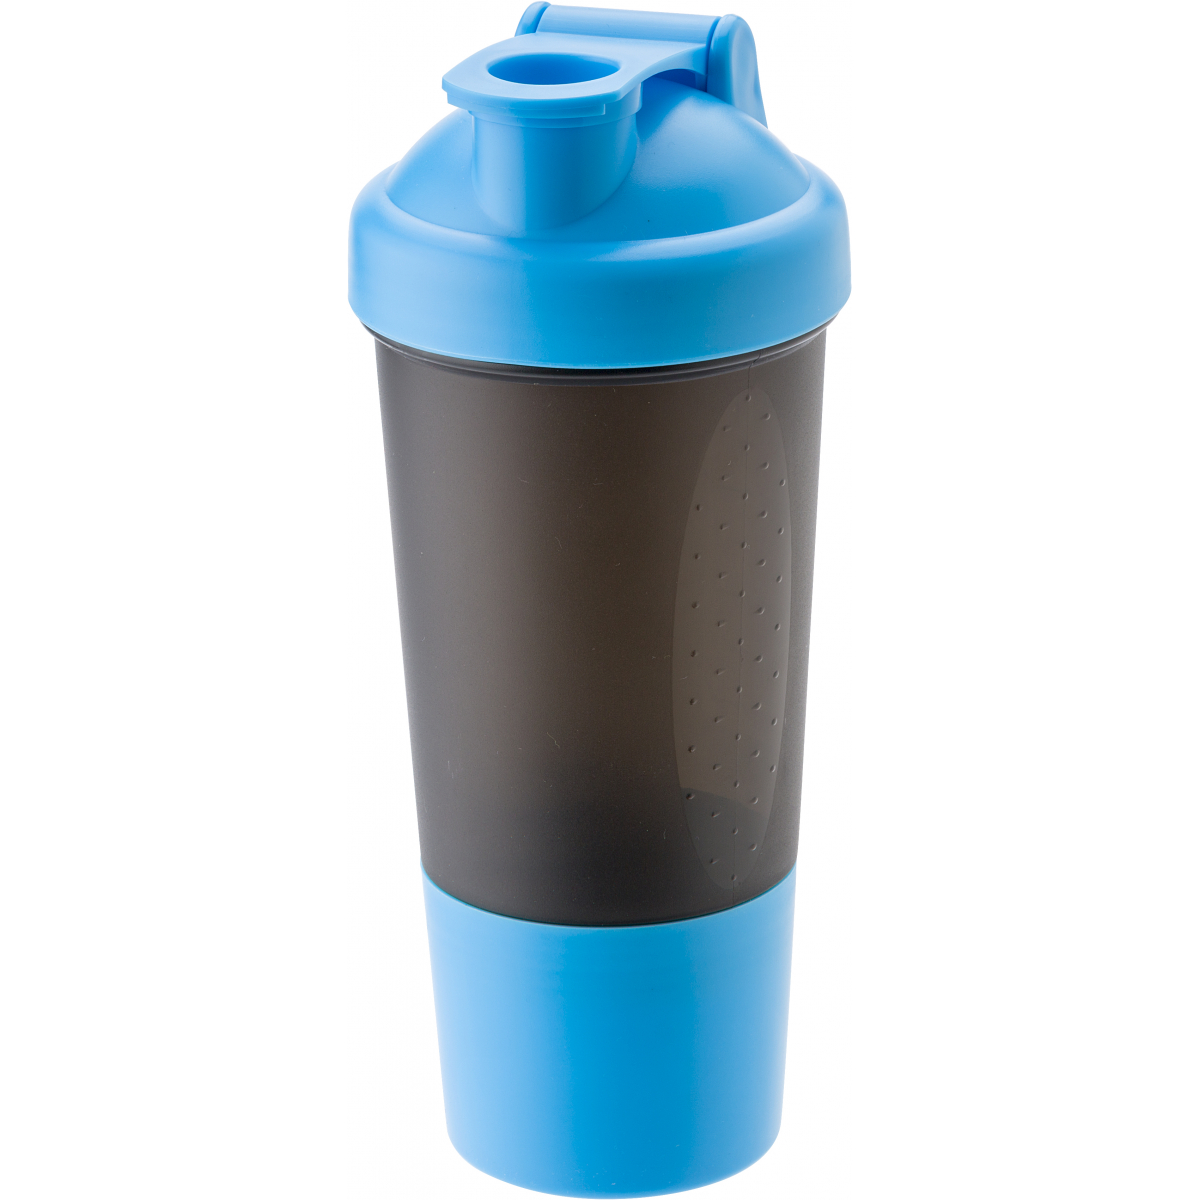 Proteine shaker | Mixen | 500 ml